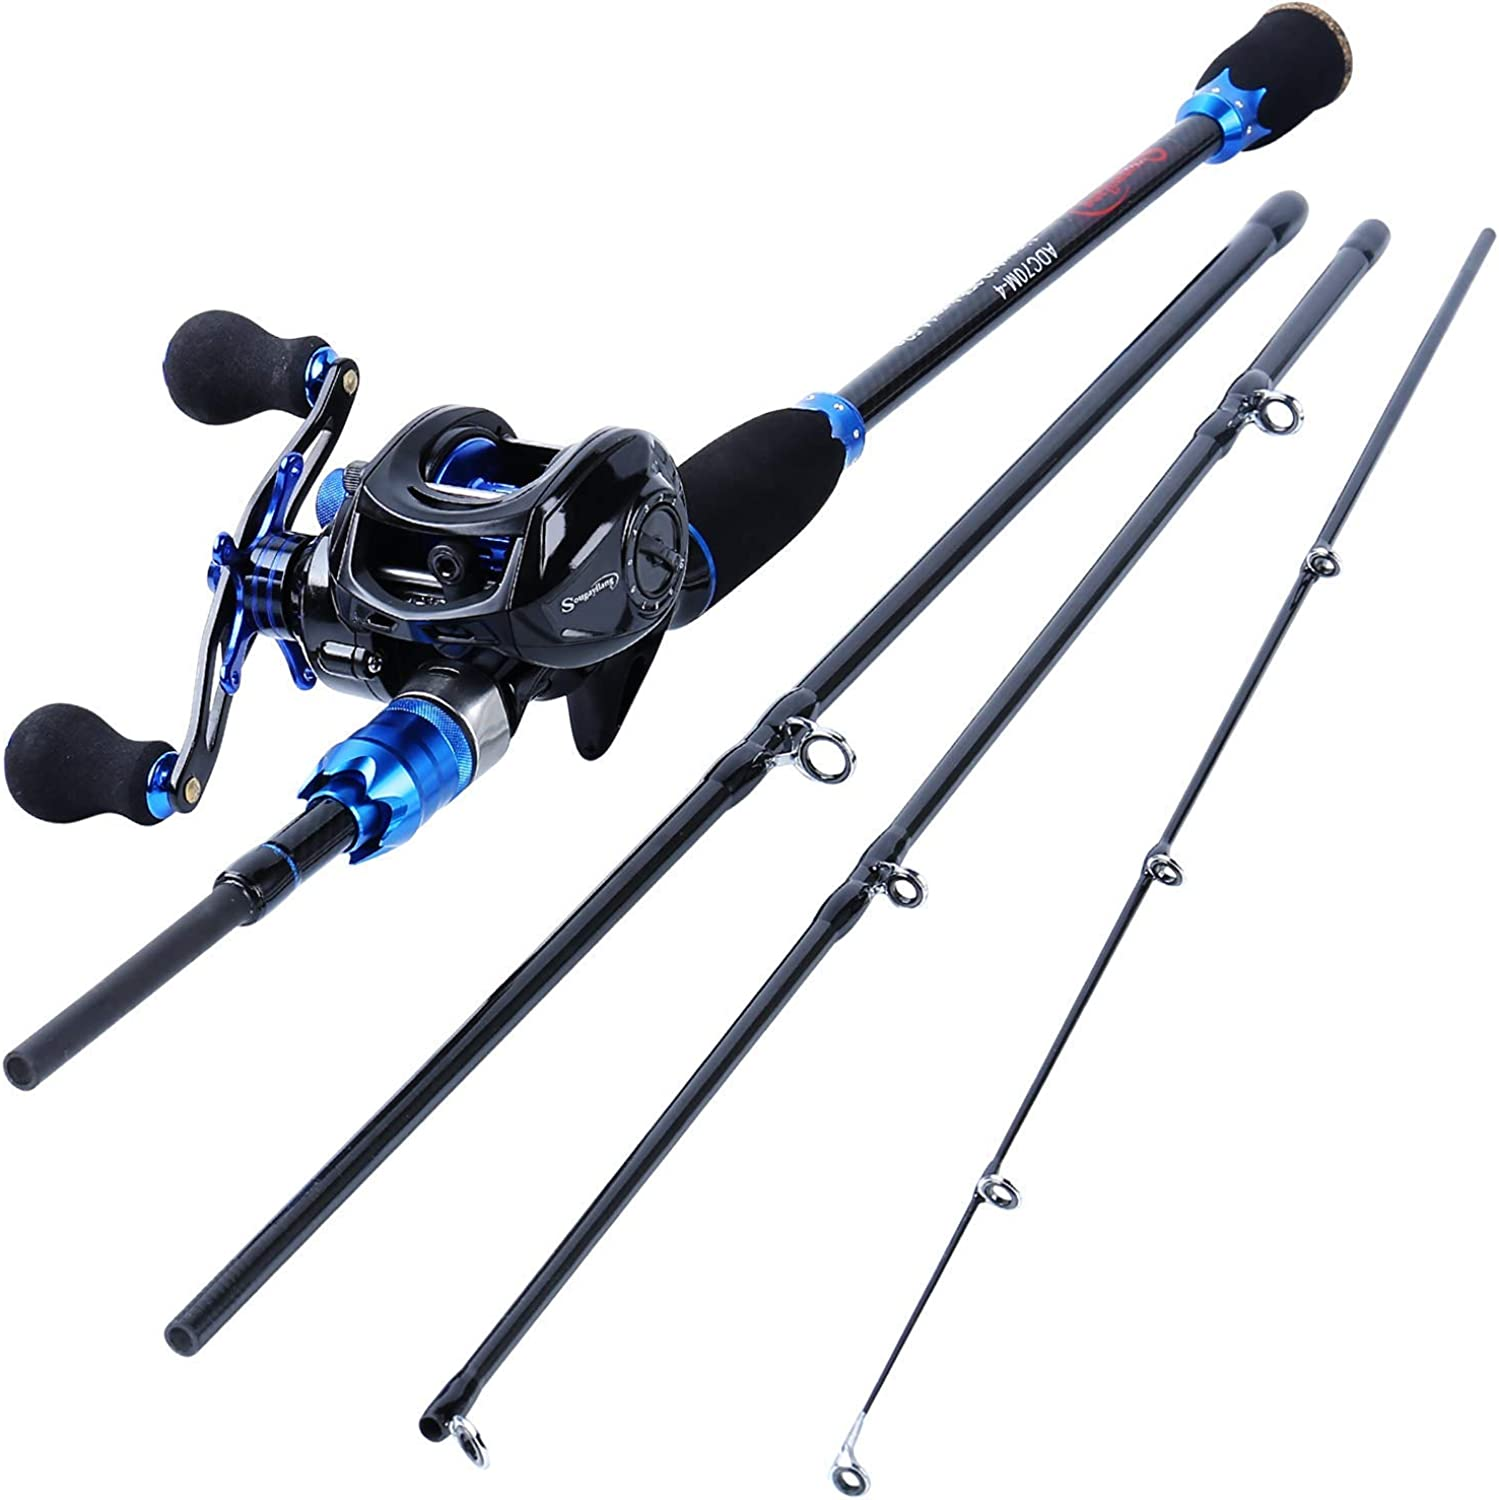 Sougayilang Fishing Rod and Reel Combos,24-Ton Carbon Fiber Fishing Poles with Baitcasting Reel,7.0 1 Gear for Travel Freshwater-2.1M Rod with Right Handed Reel